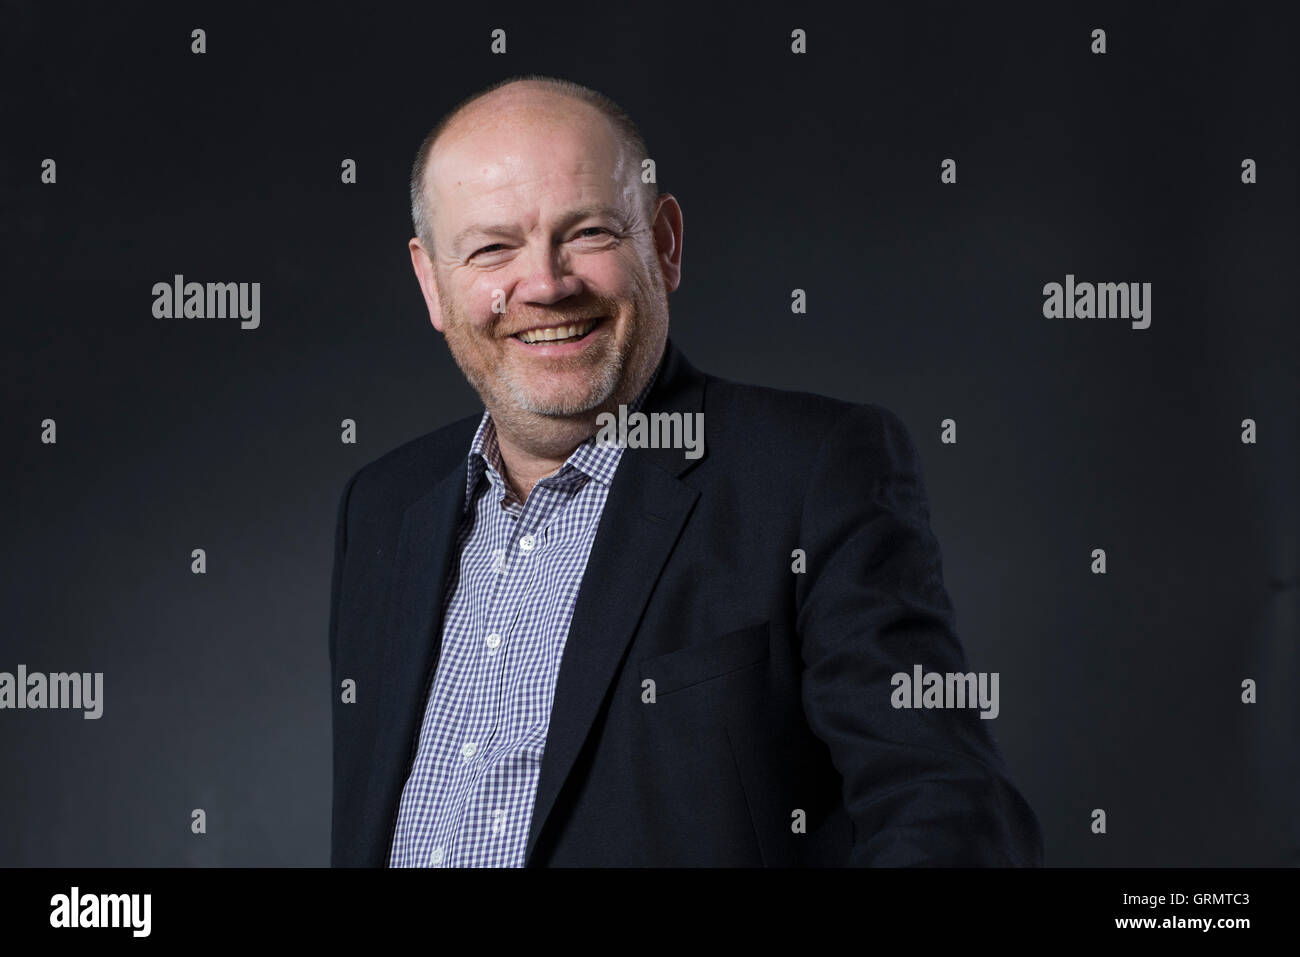 Chief Executive Officer of The New York Times Company Mark Thompson. Stock Photo